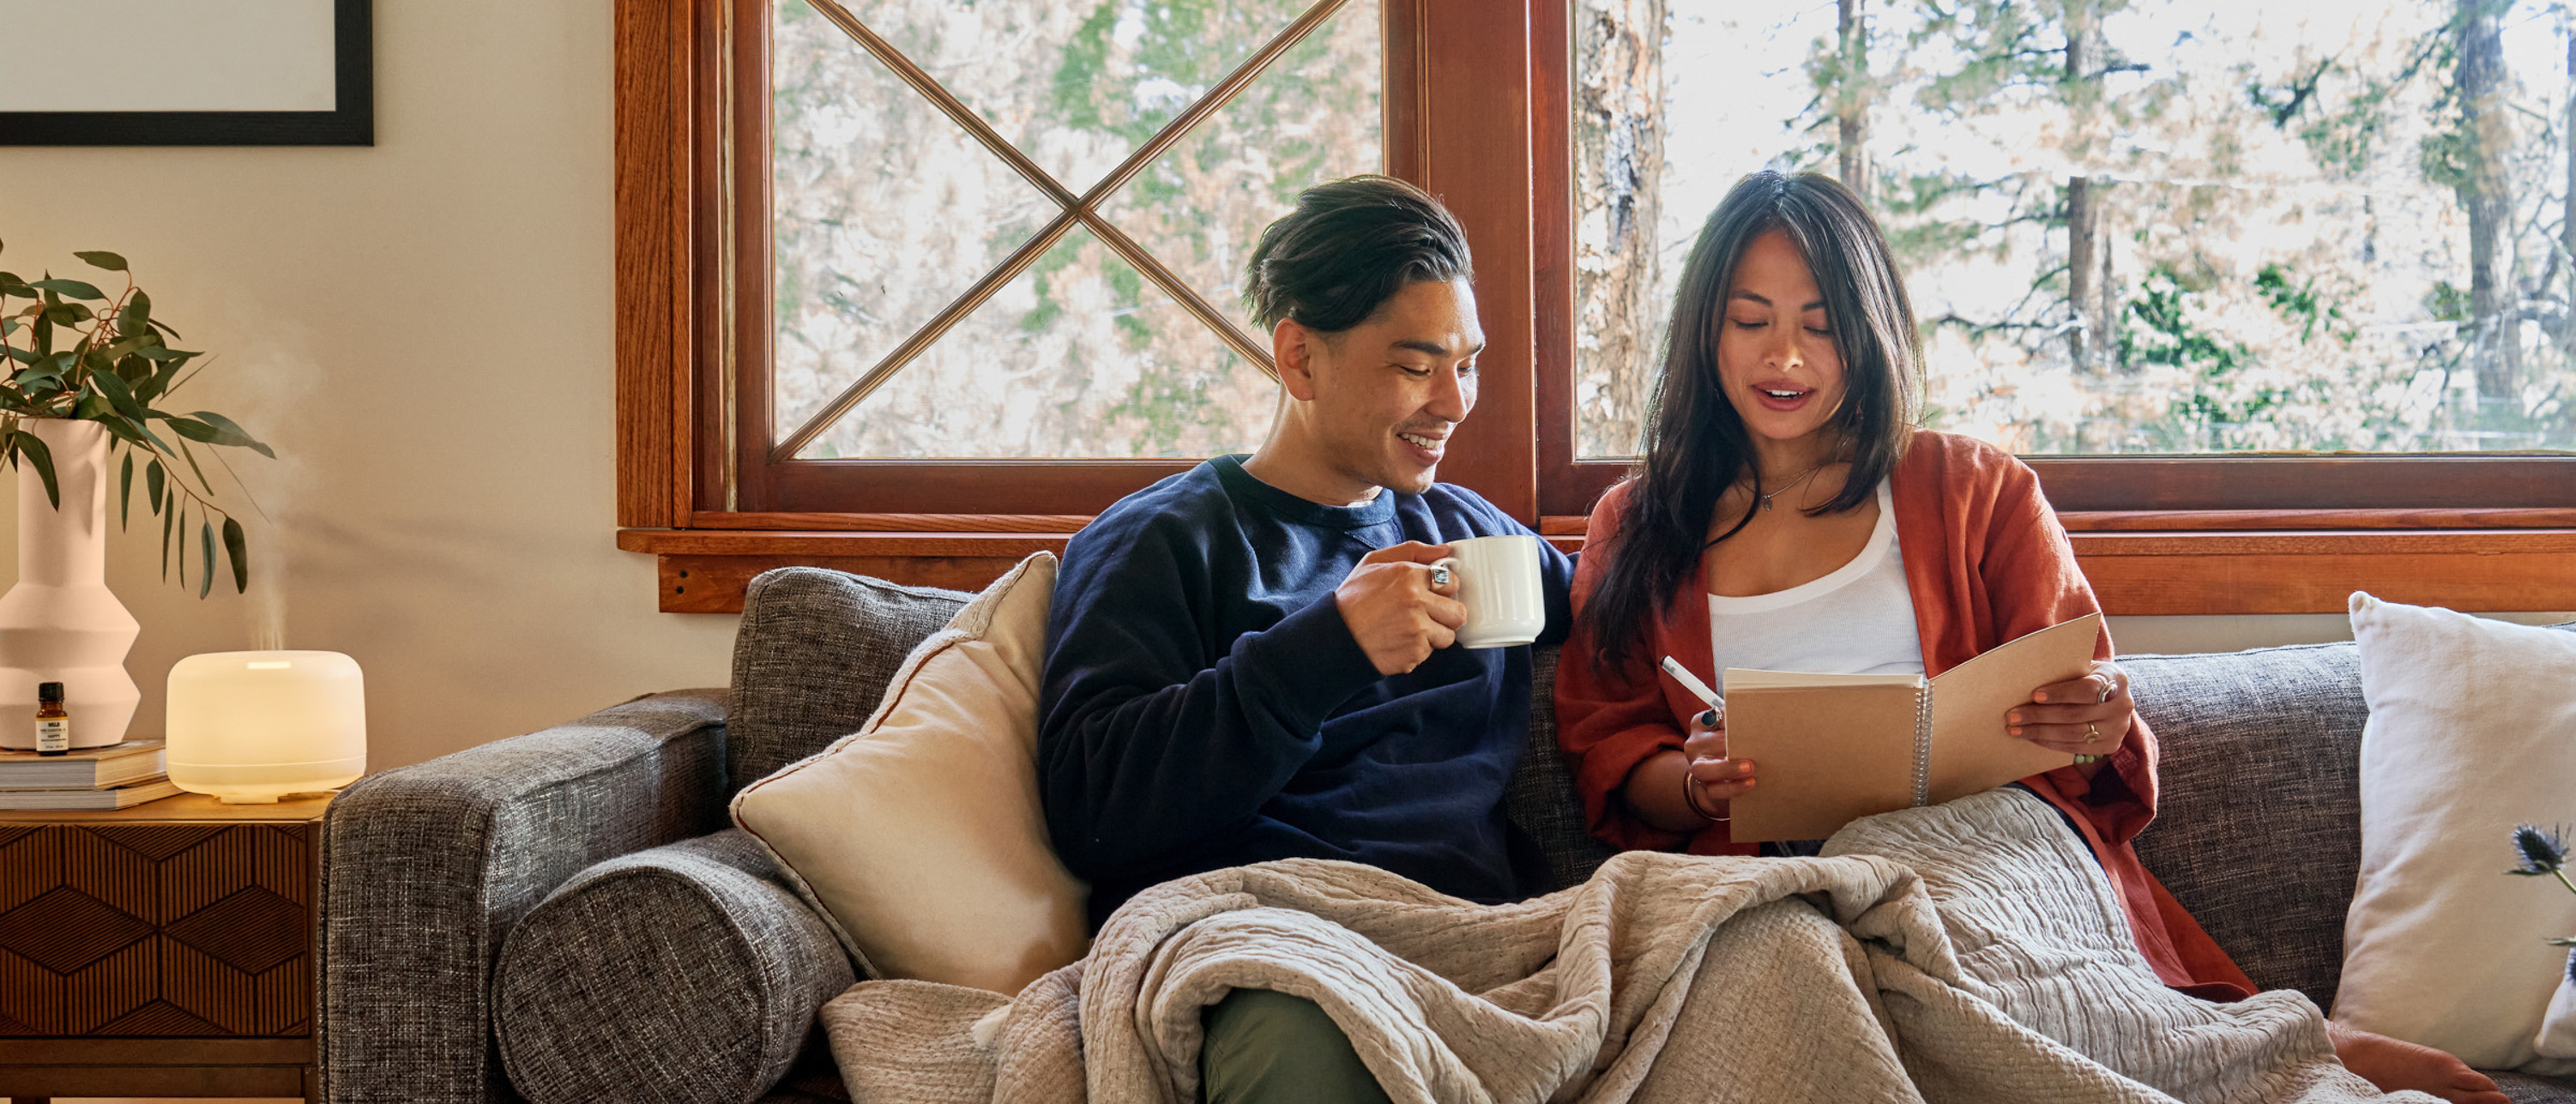 Couple sitting on the couch with a blanket and mugs, looking at a journal with an essential oil diffuser on the table next to them.